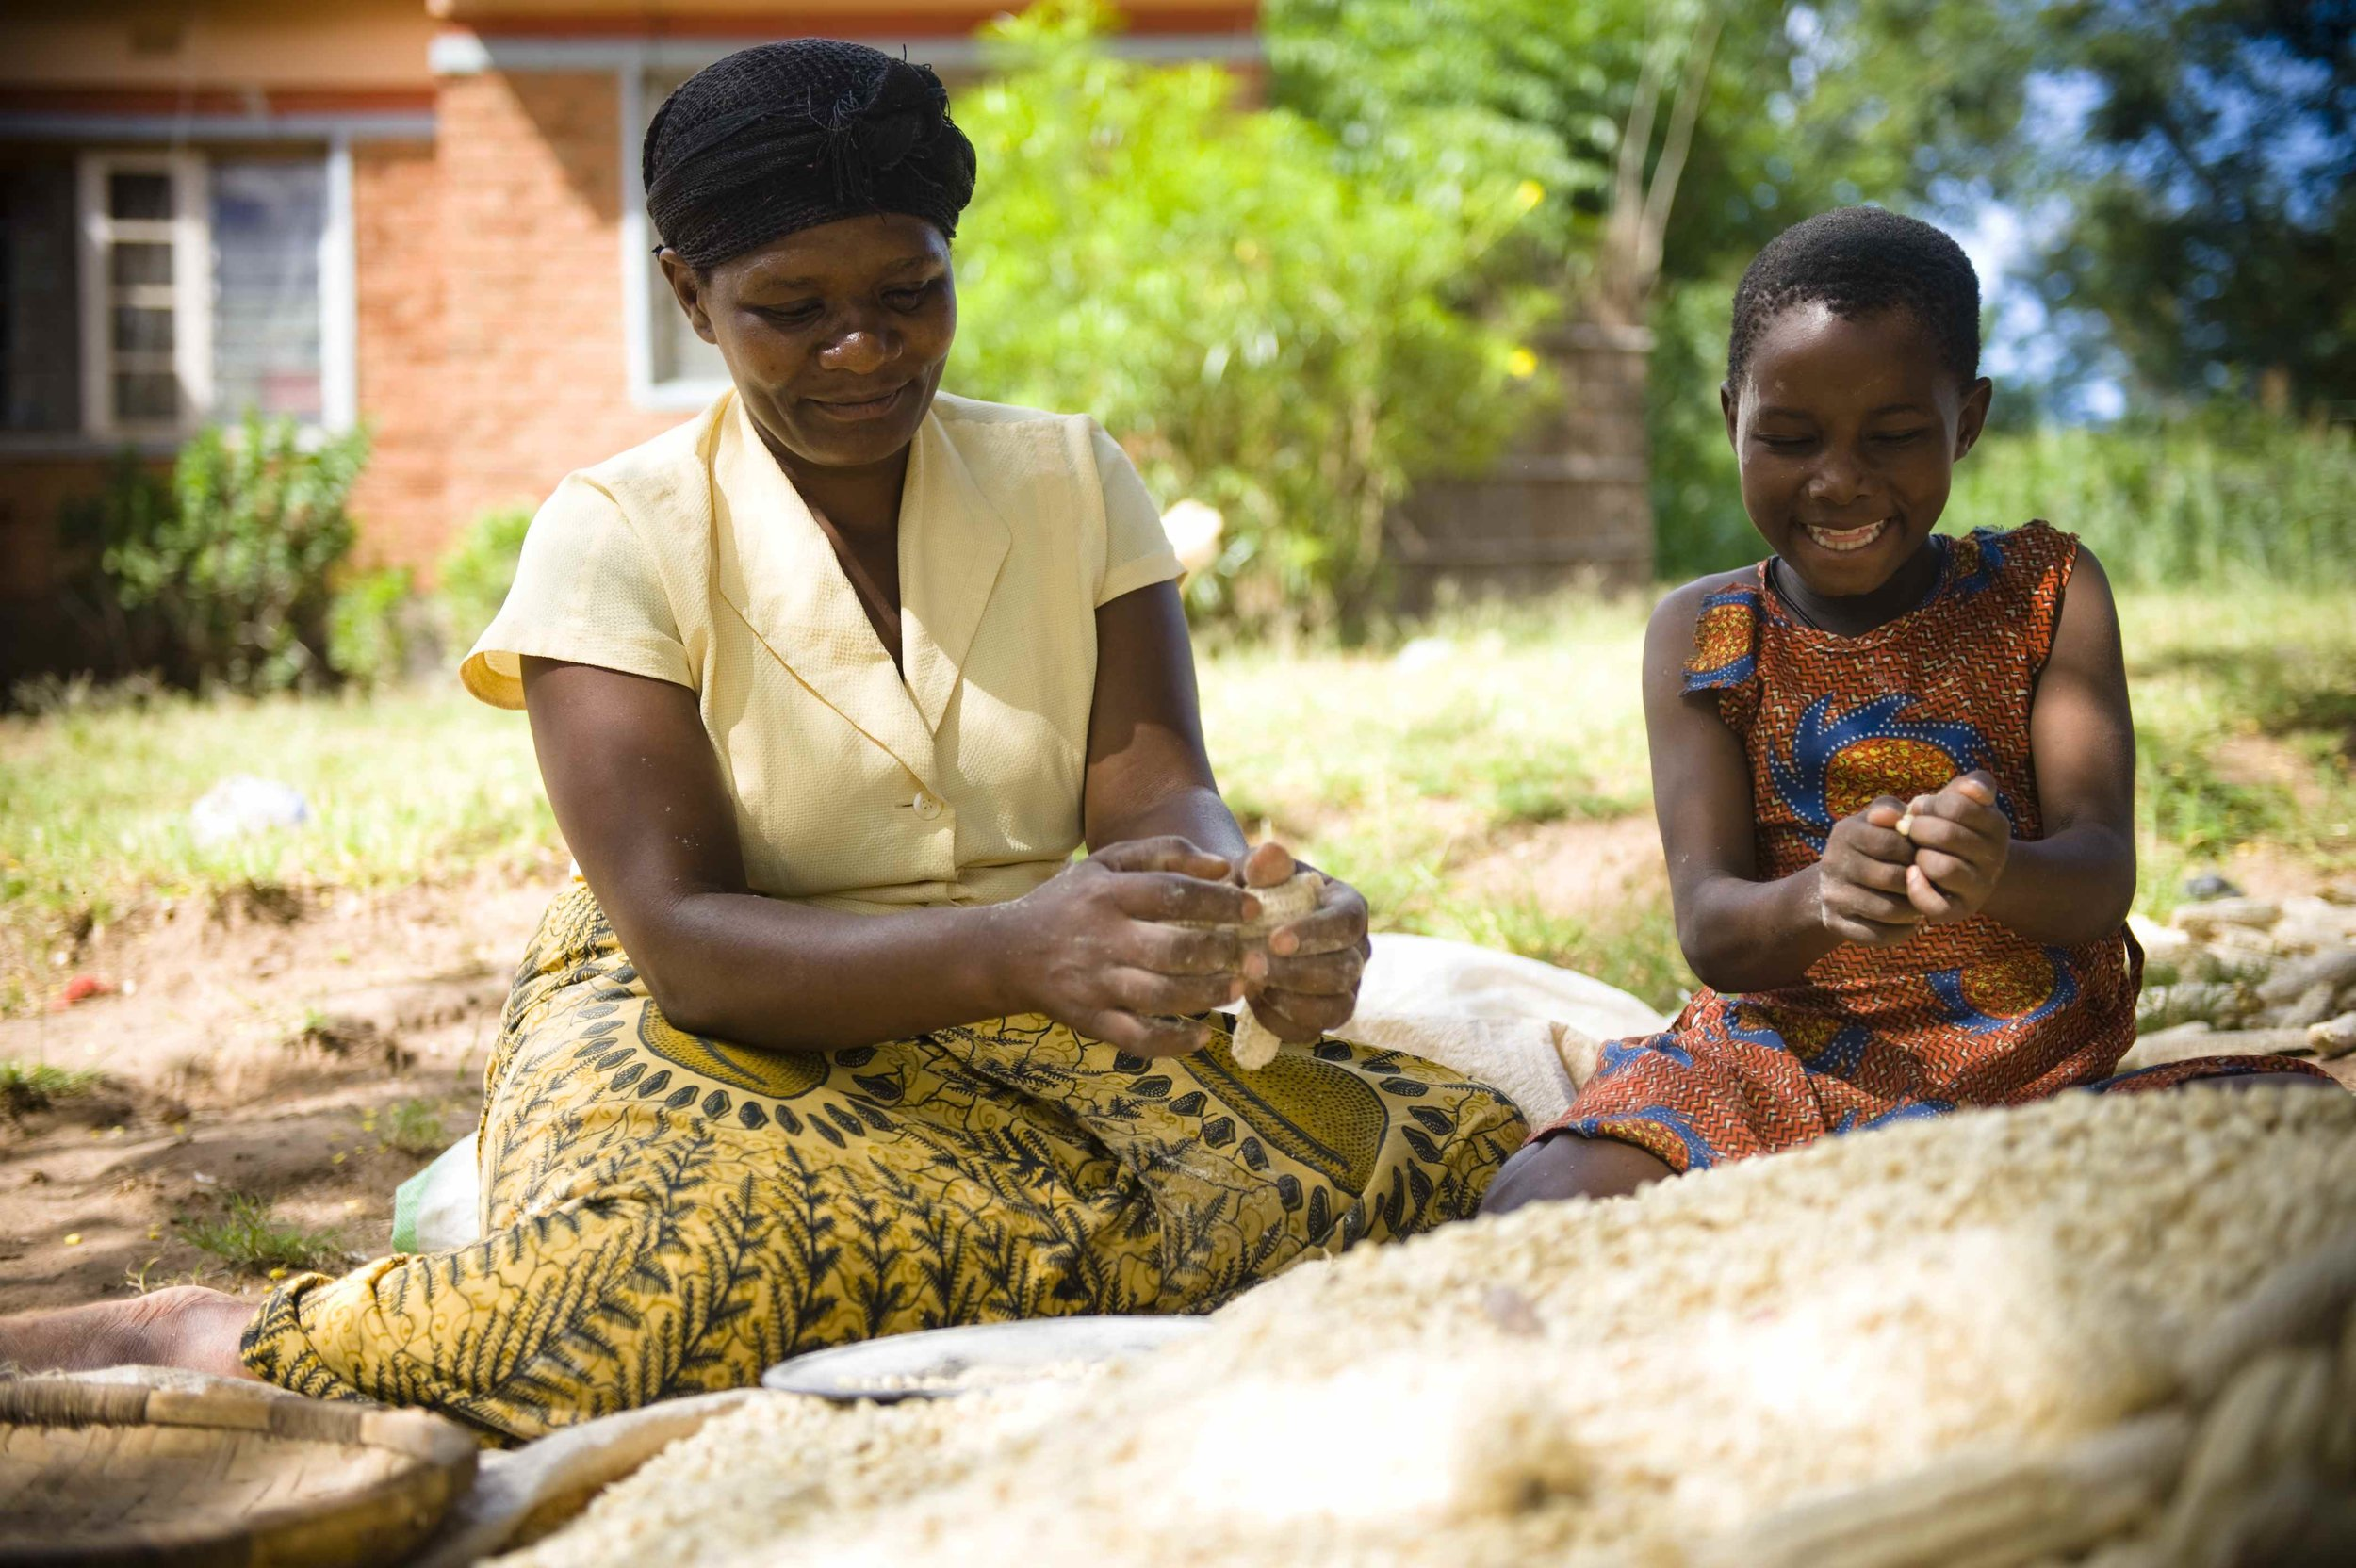 An older African woman and a young girl sit outside preparing maize